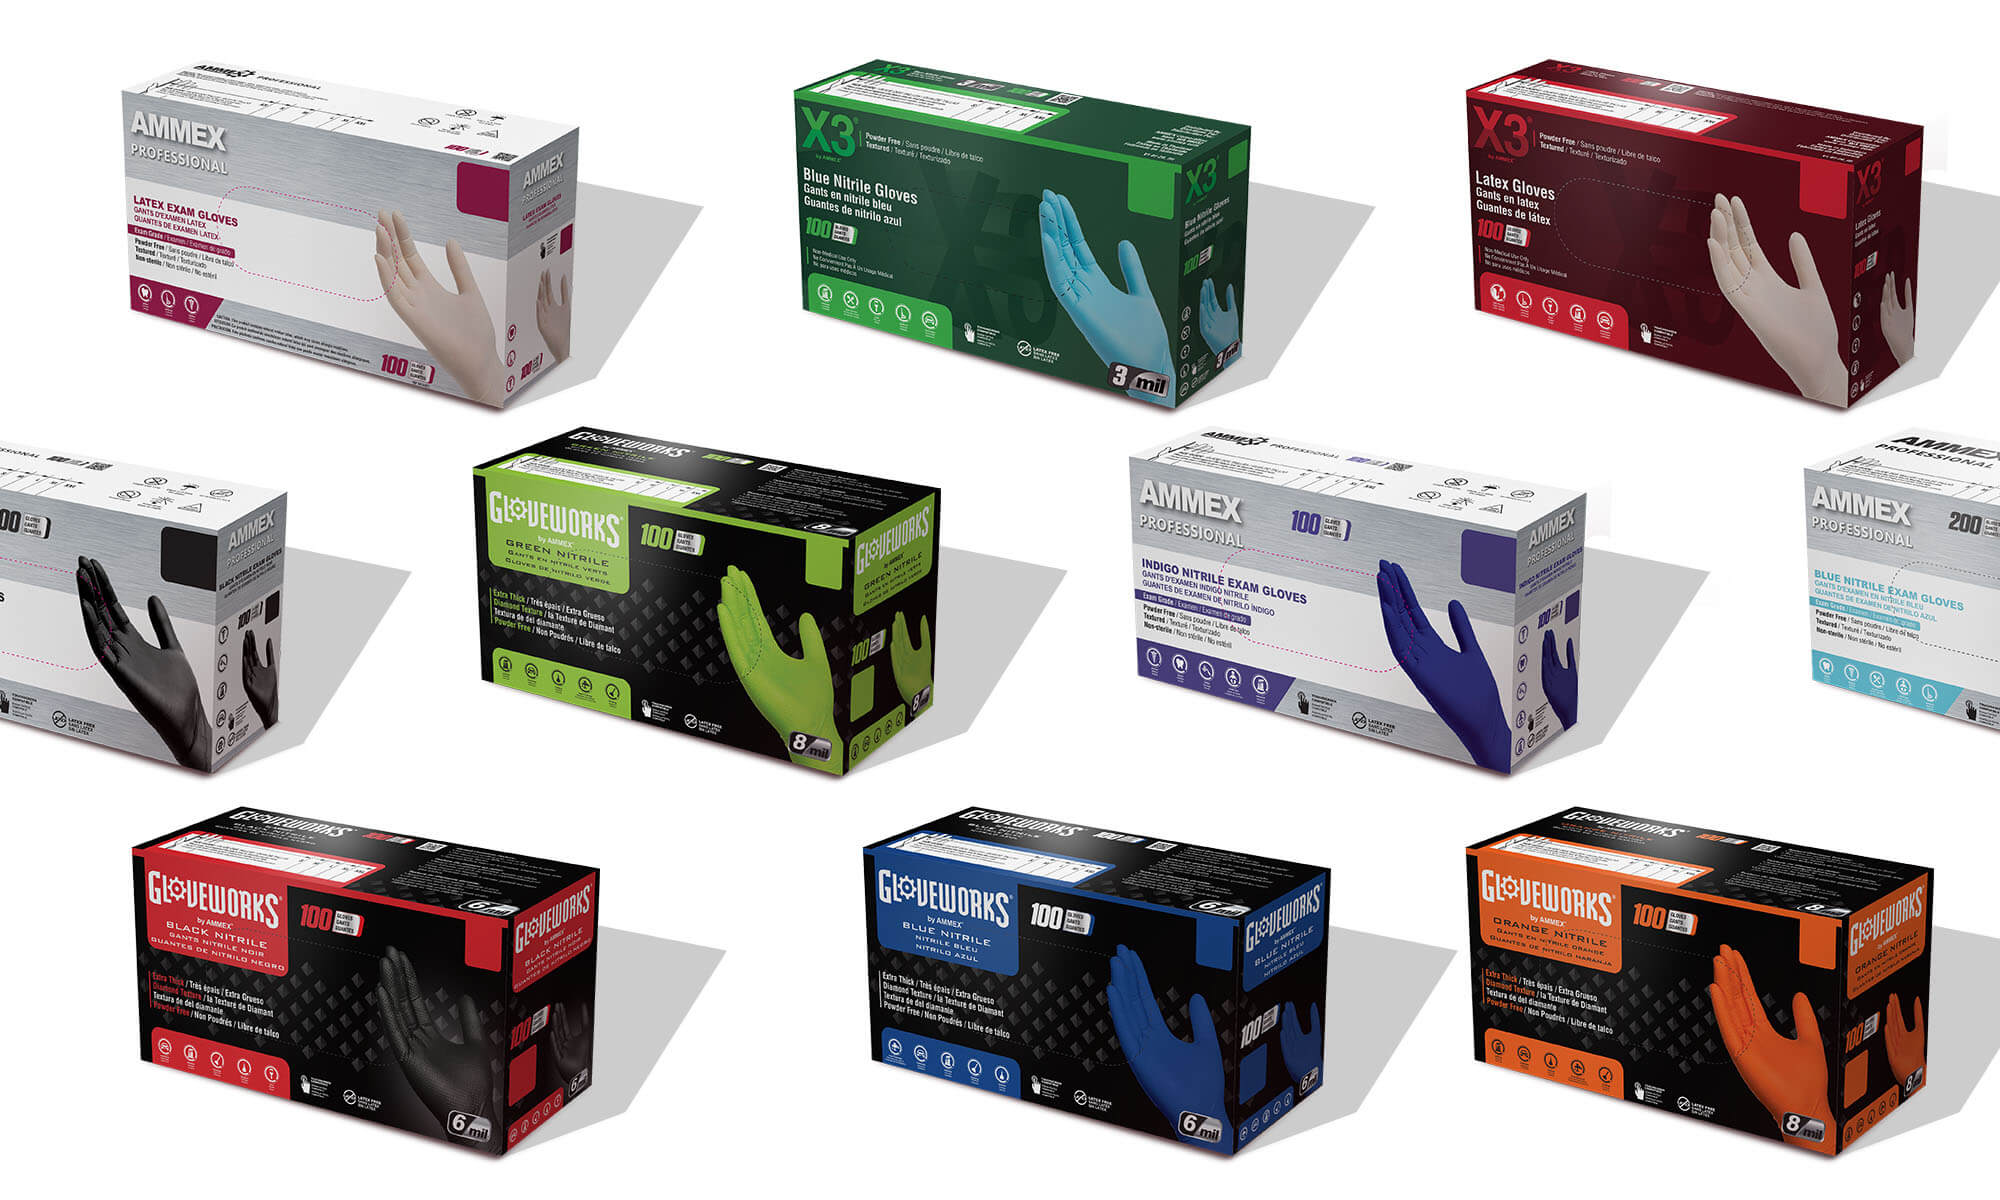 AMMEX's new packaging will begin to make its debut in February 2021.